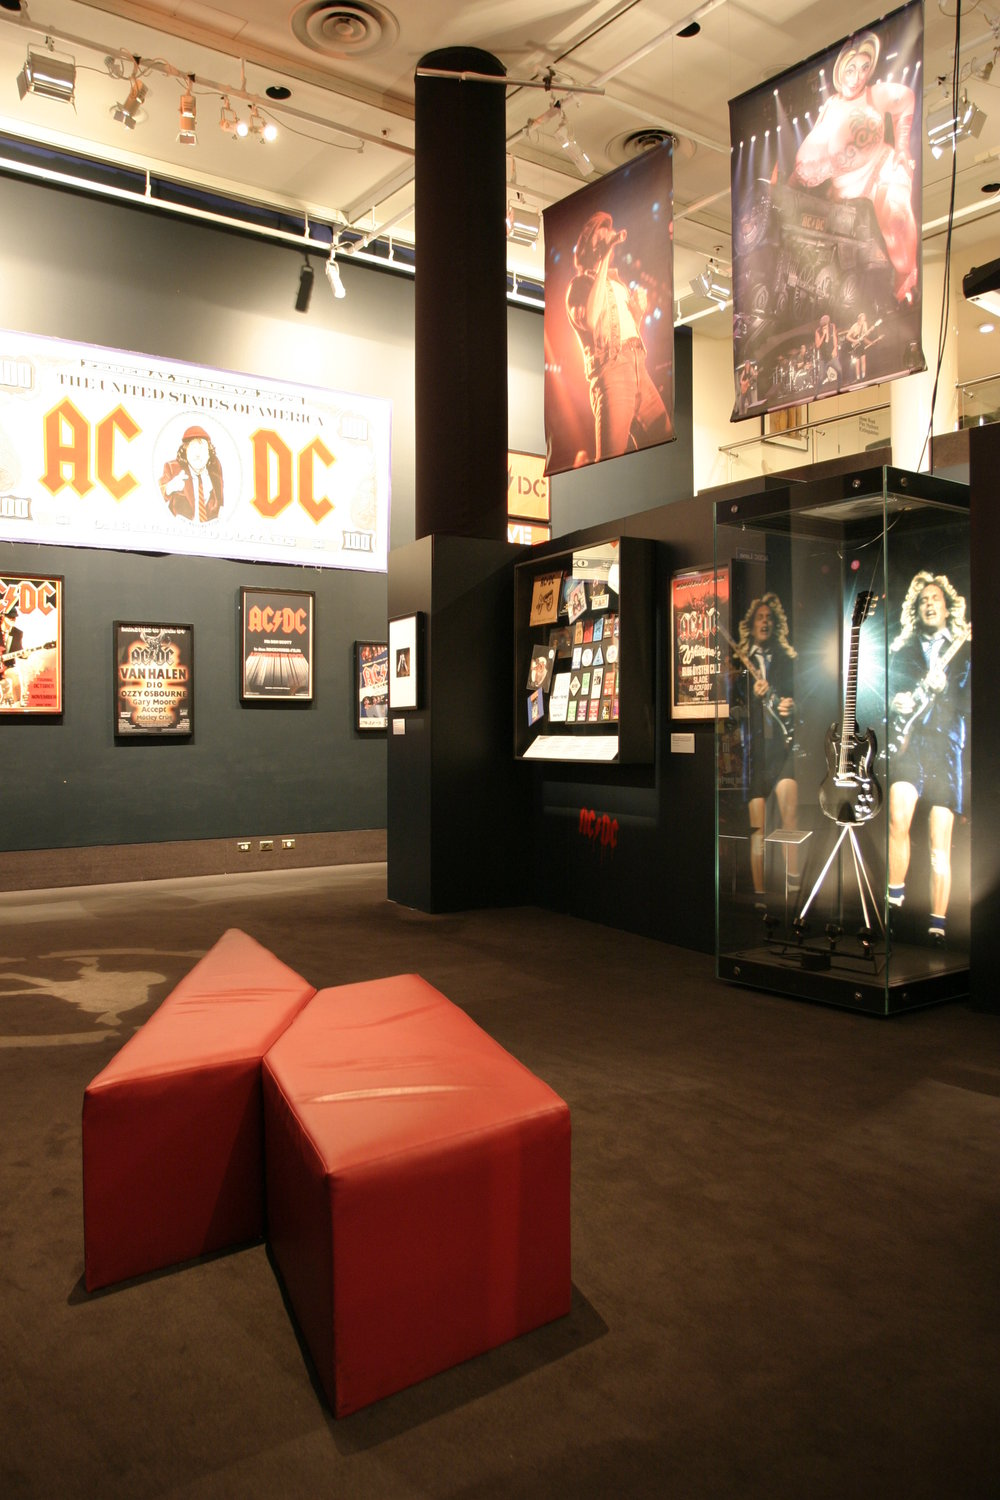 AC/DC: Australia's Family Jewels exhibition